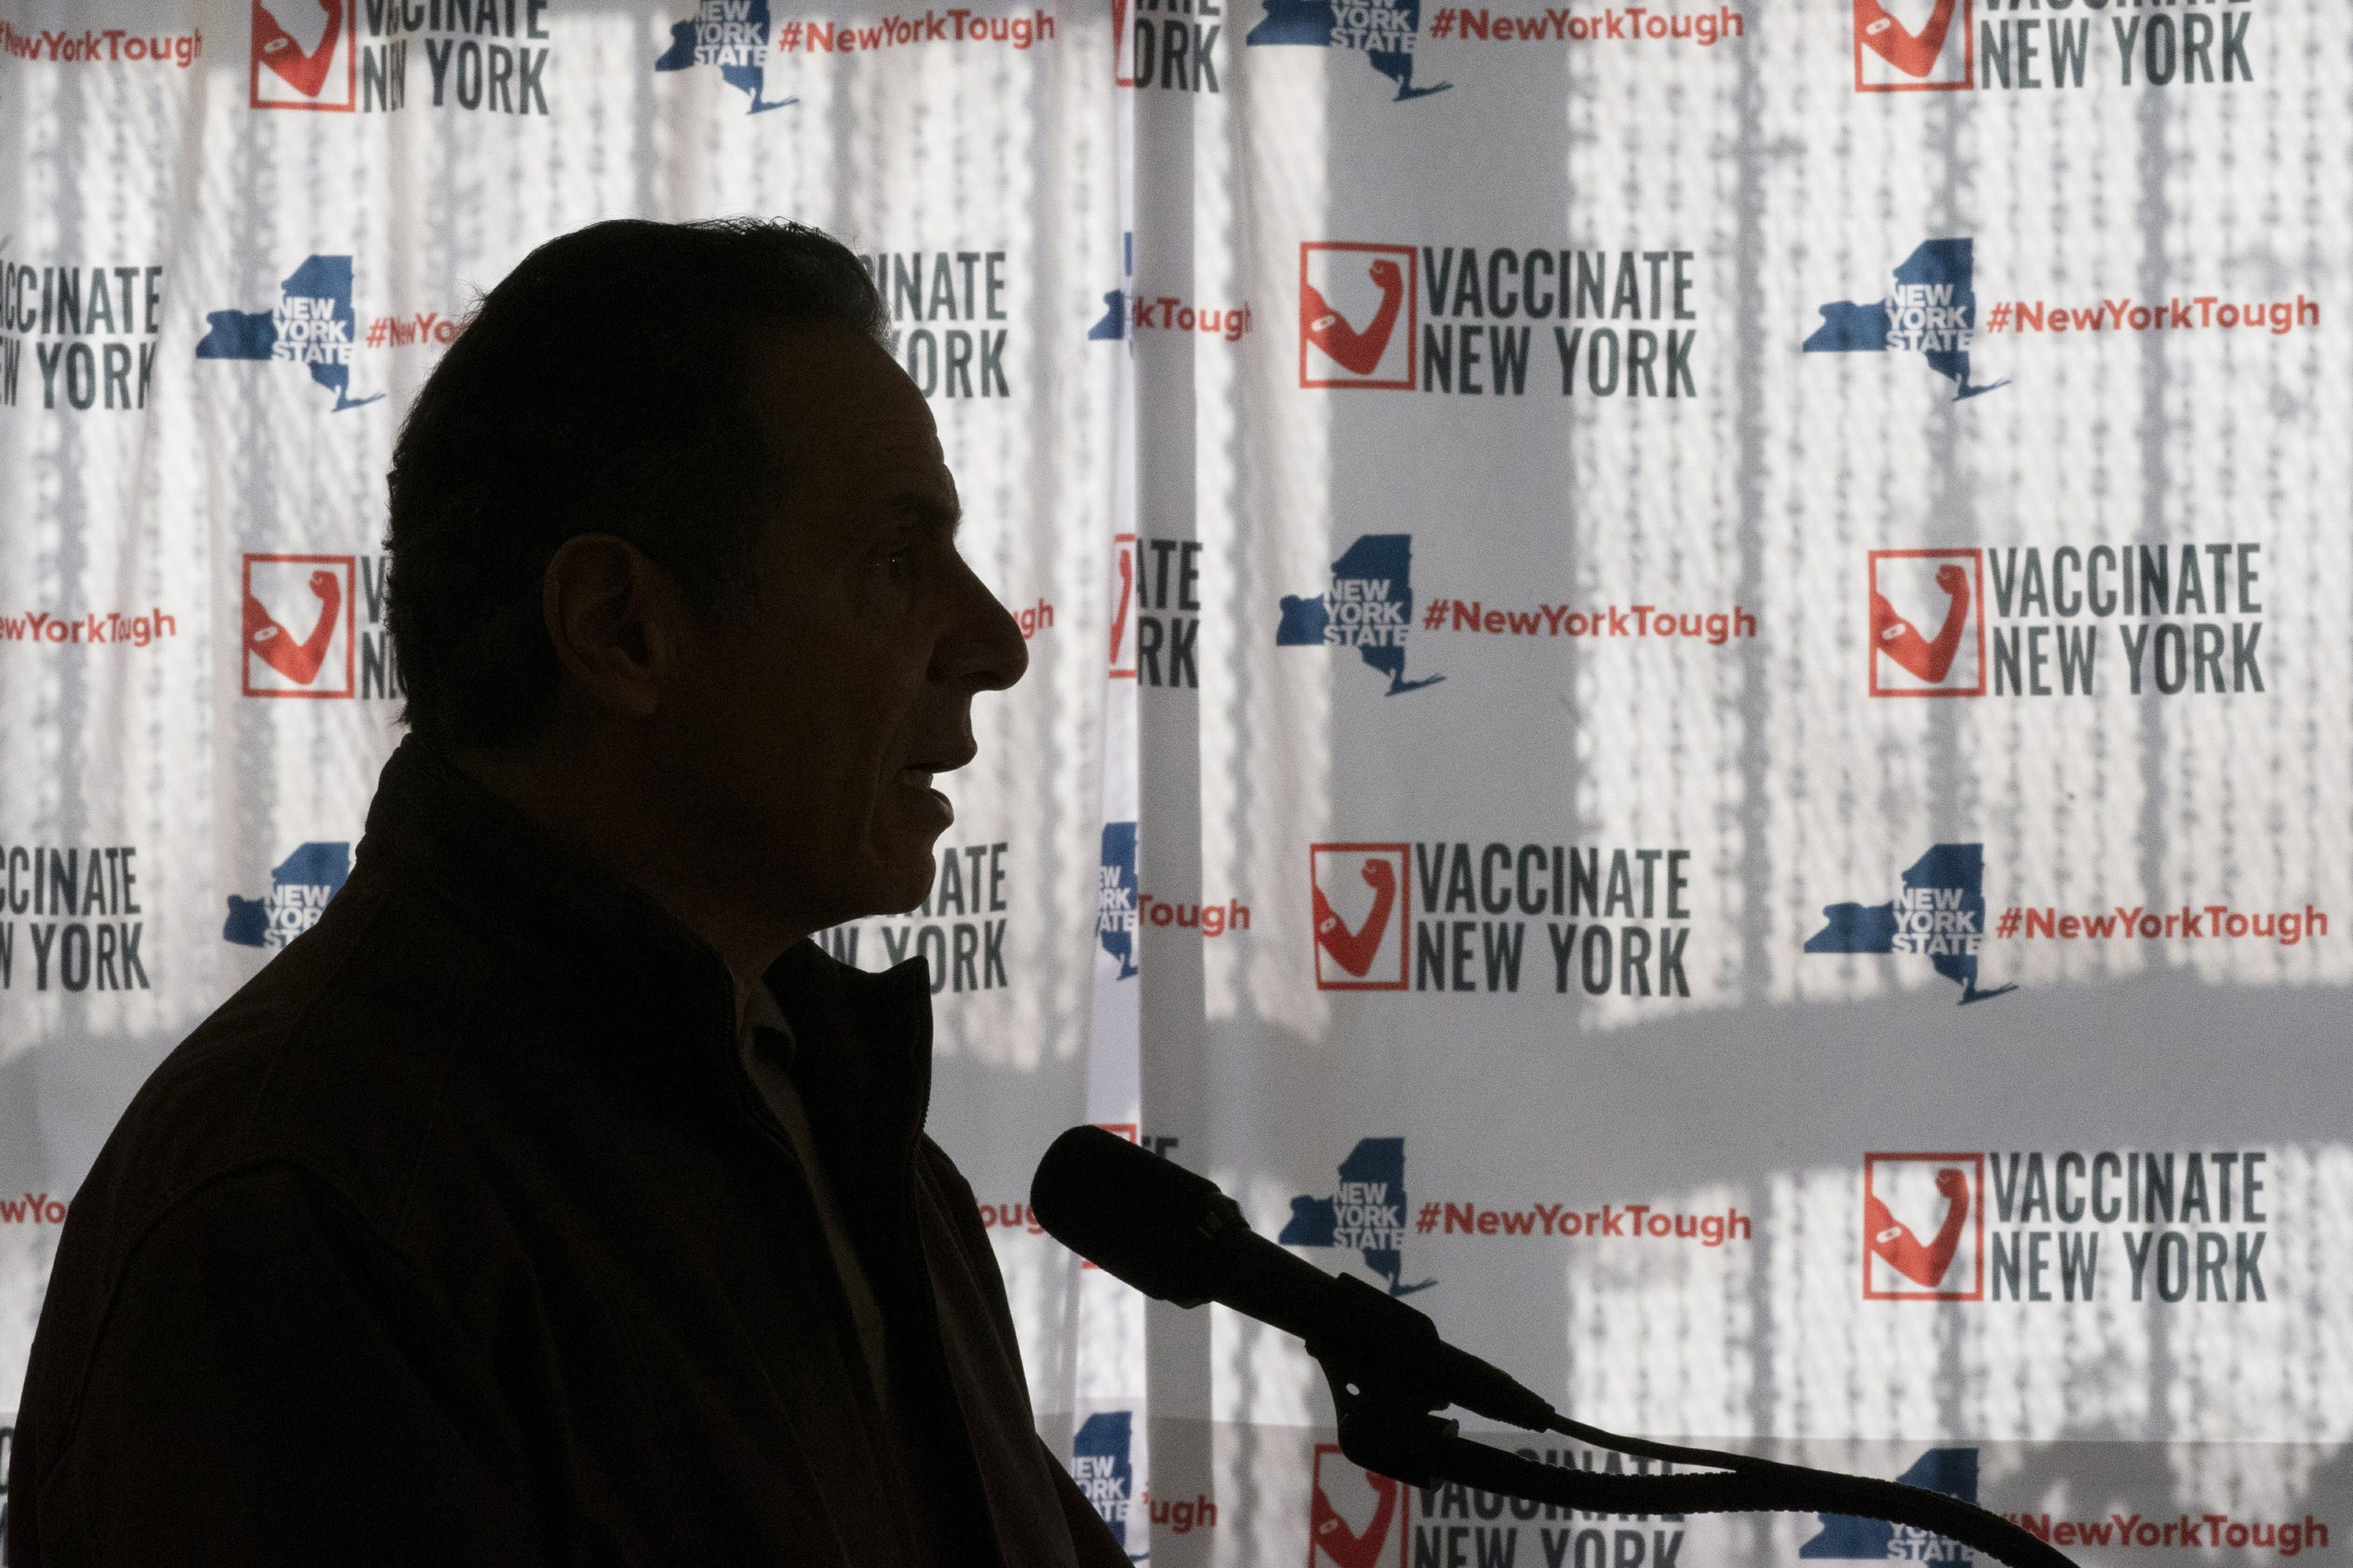 Lauded early in pandemic Cuomo now panned on nursing homes – The Associated Press